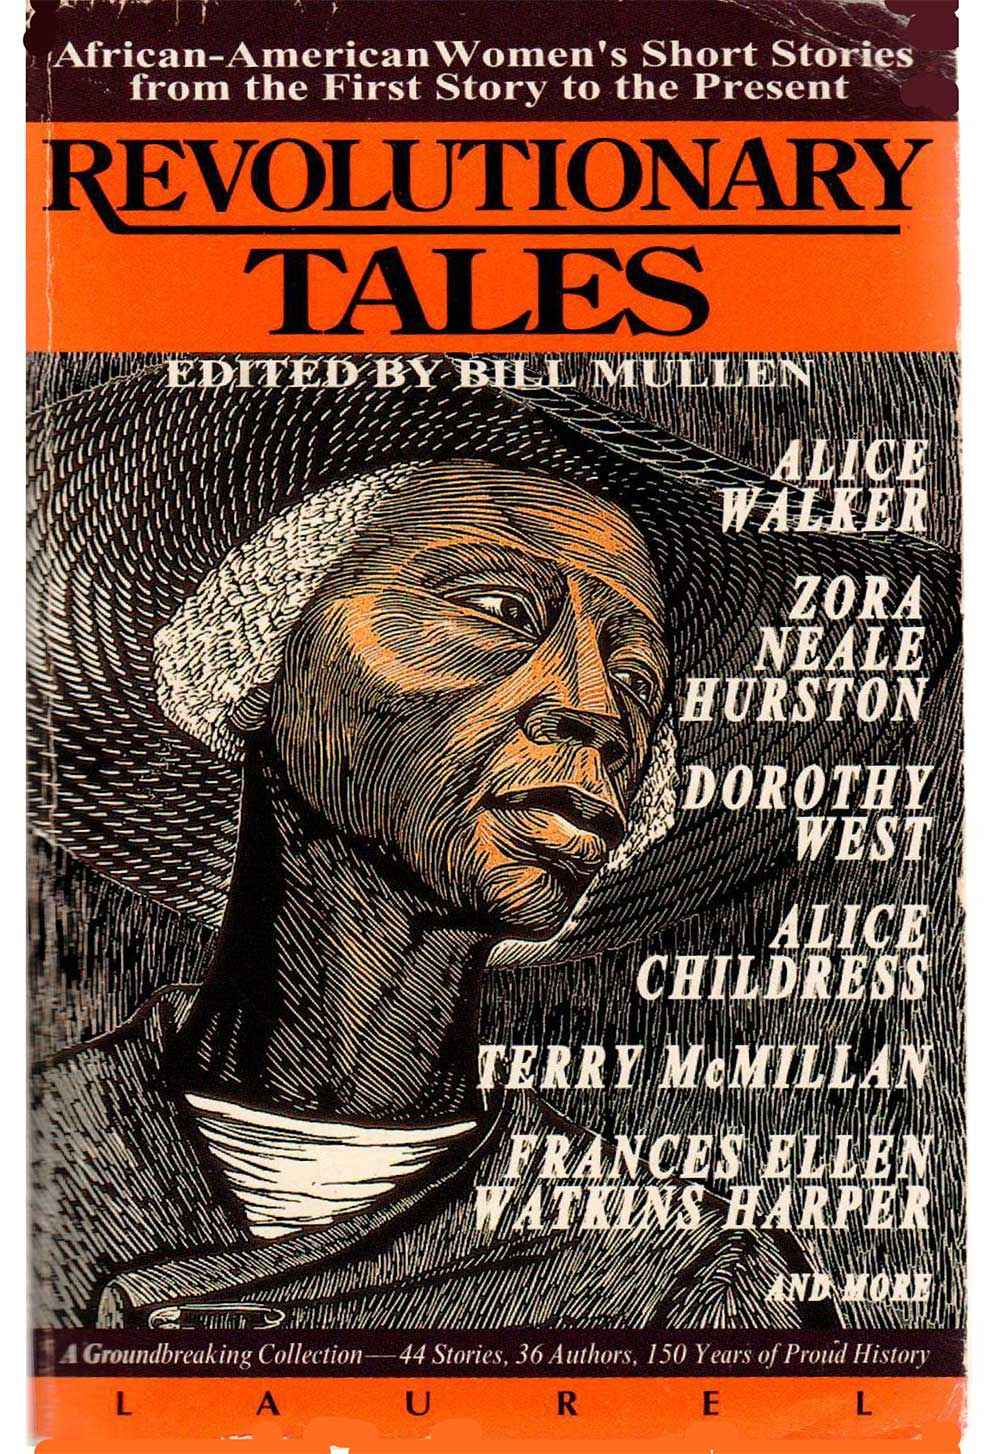 mullen-book-cover1-rev-tales-1000px.jpg